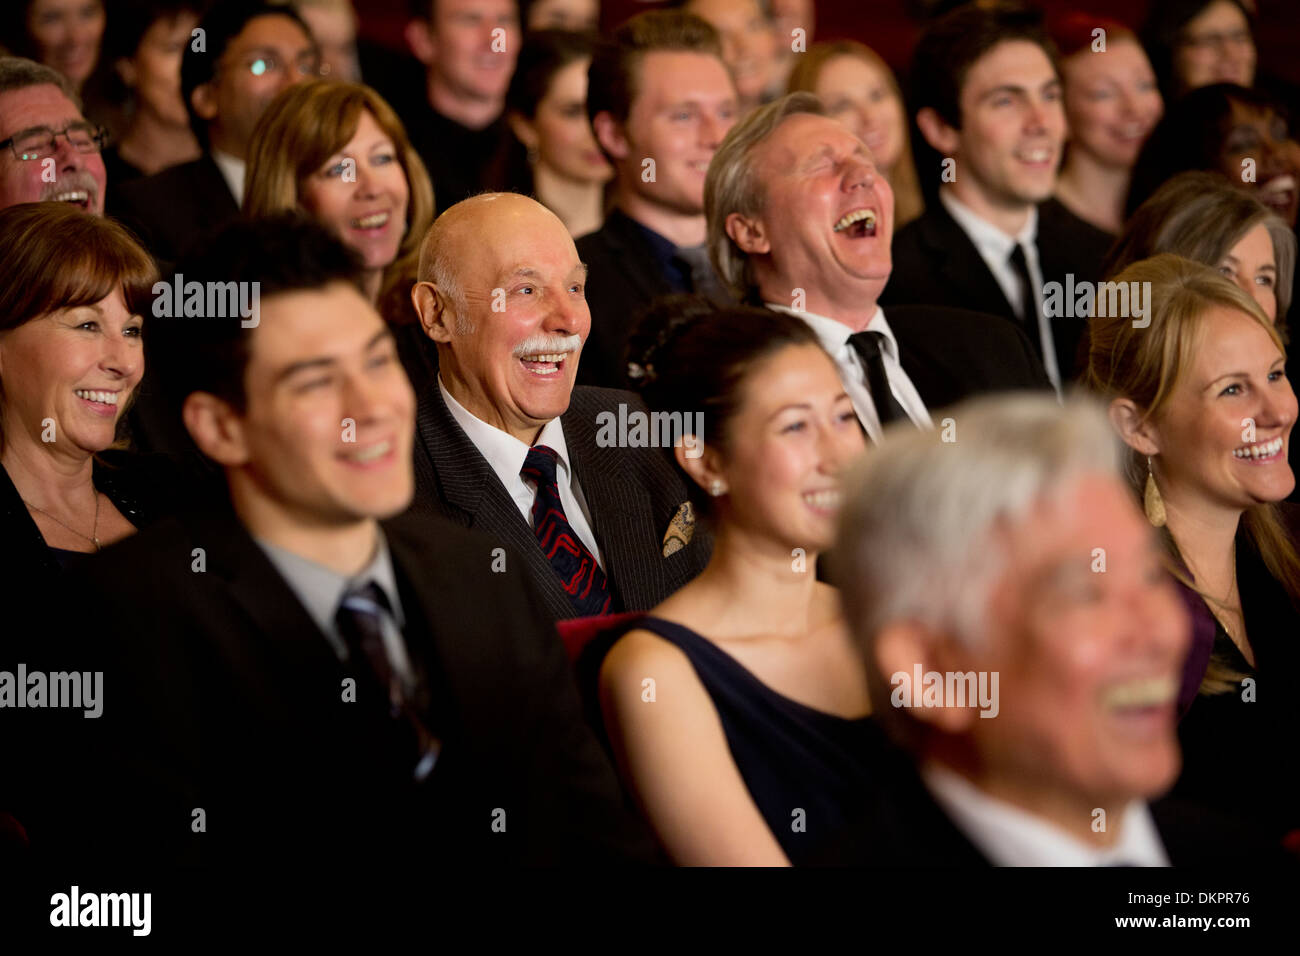 People smiling and laughing in theater audience - Stock Image